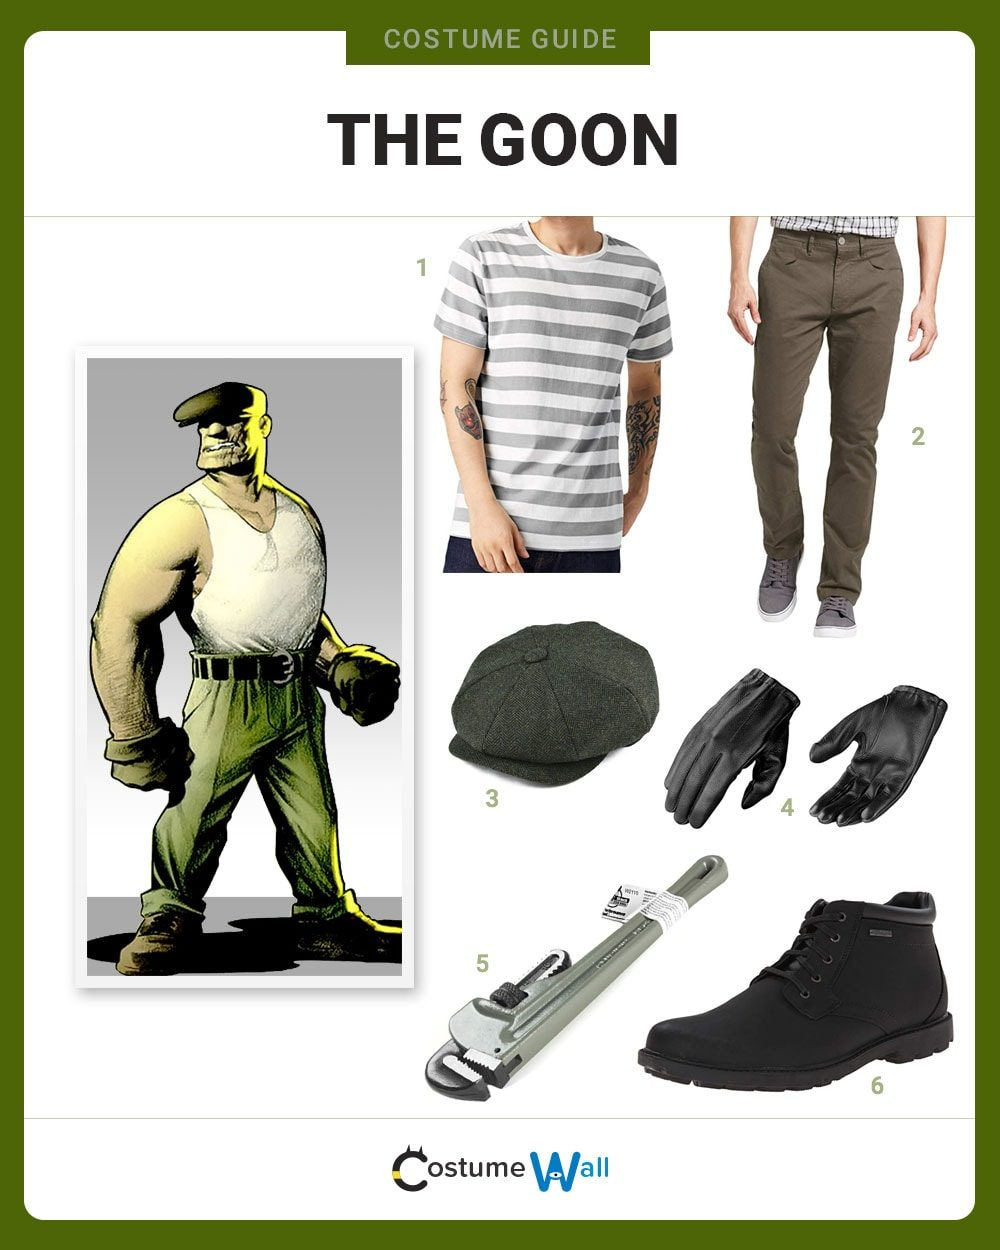 The Goon Costume Guide